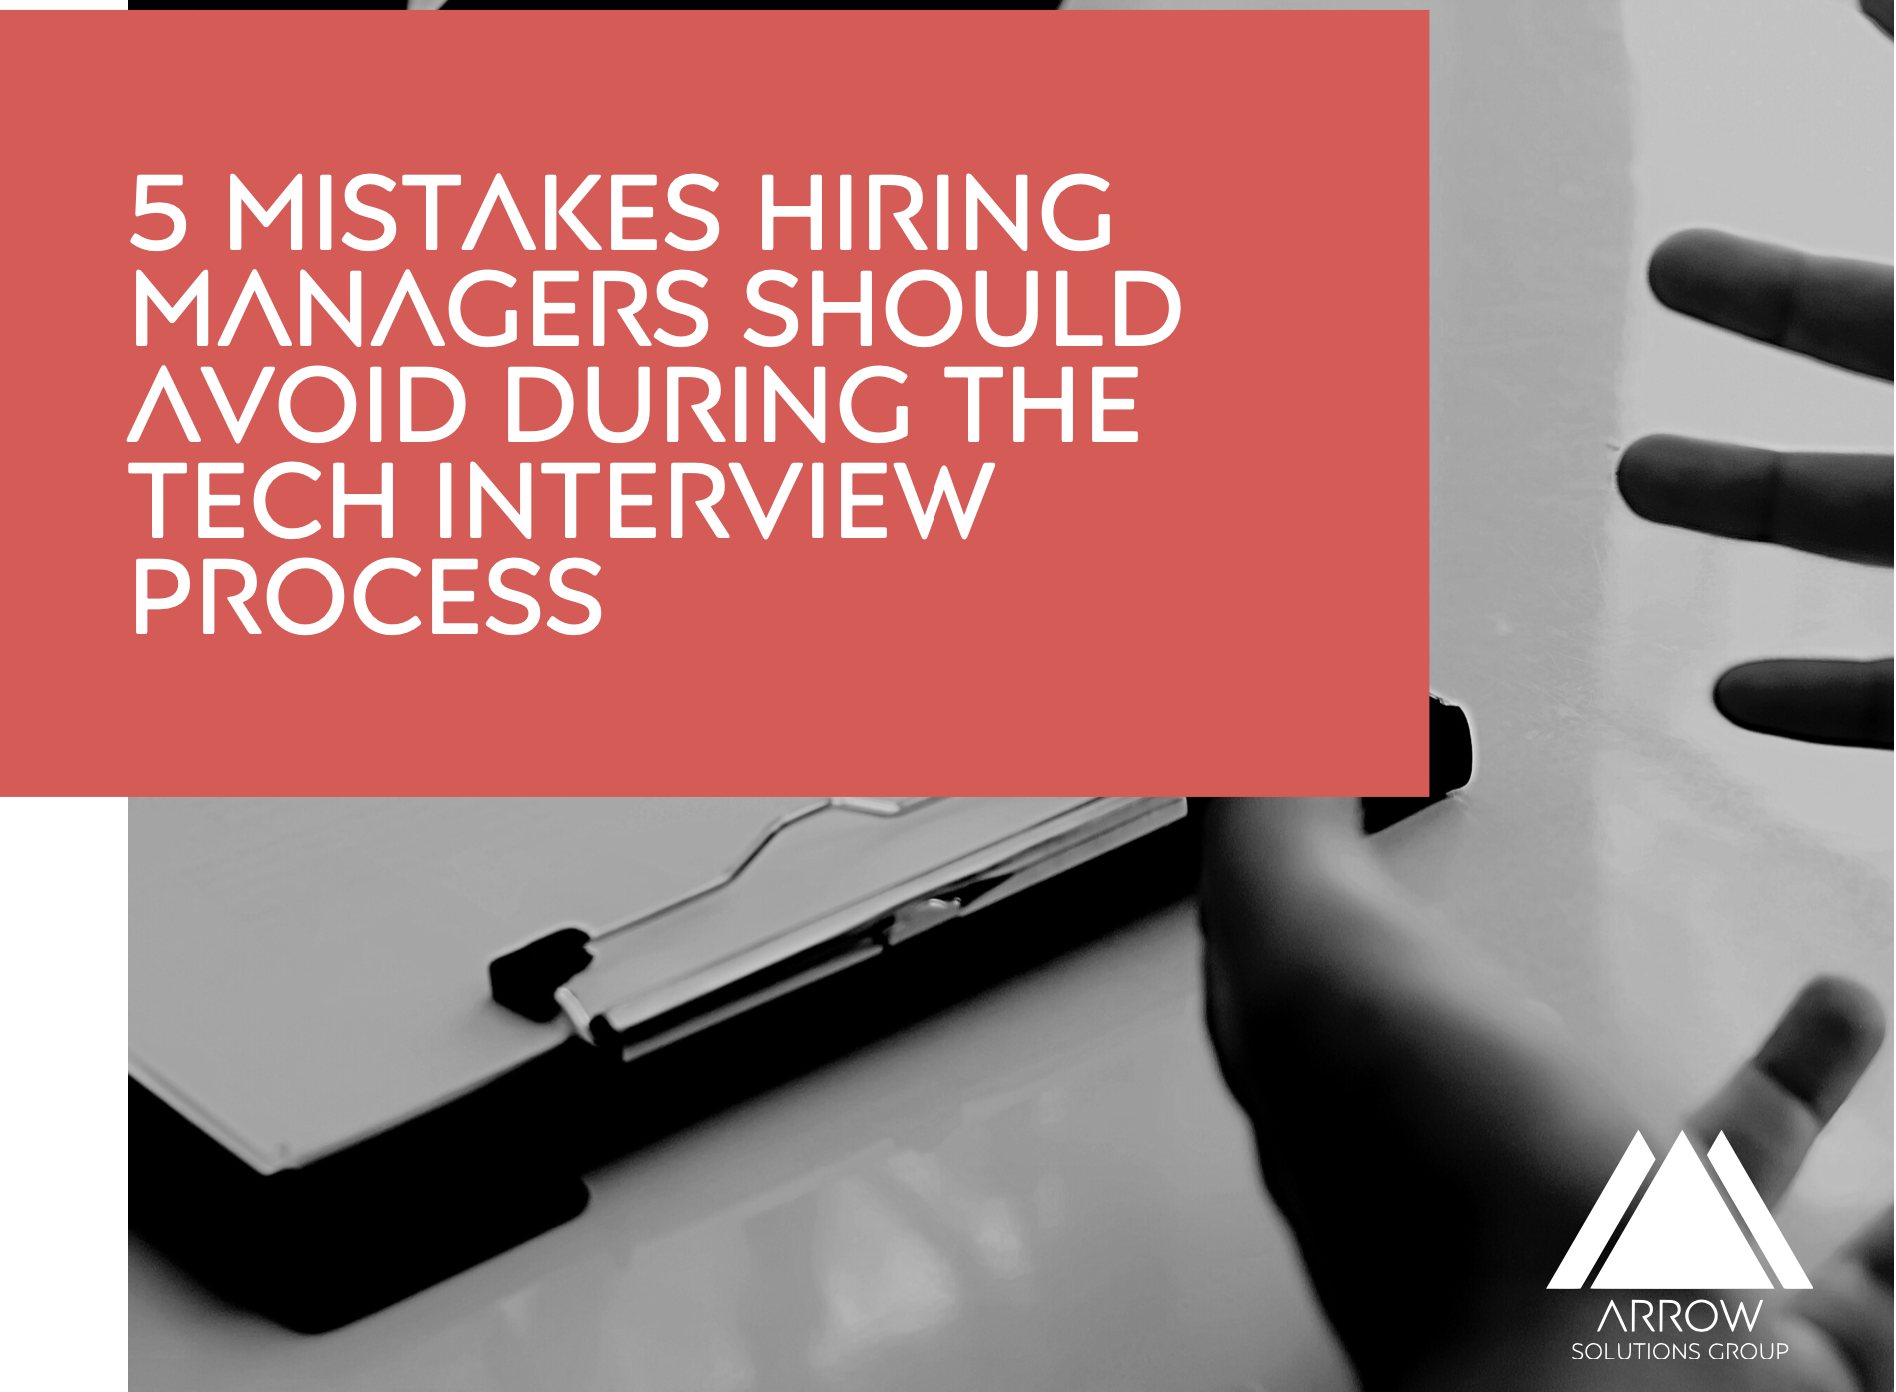 5 Mistakes Hiring Managers Should Avoid During the Tech Interview Process